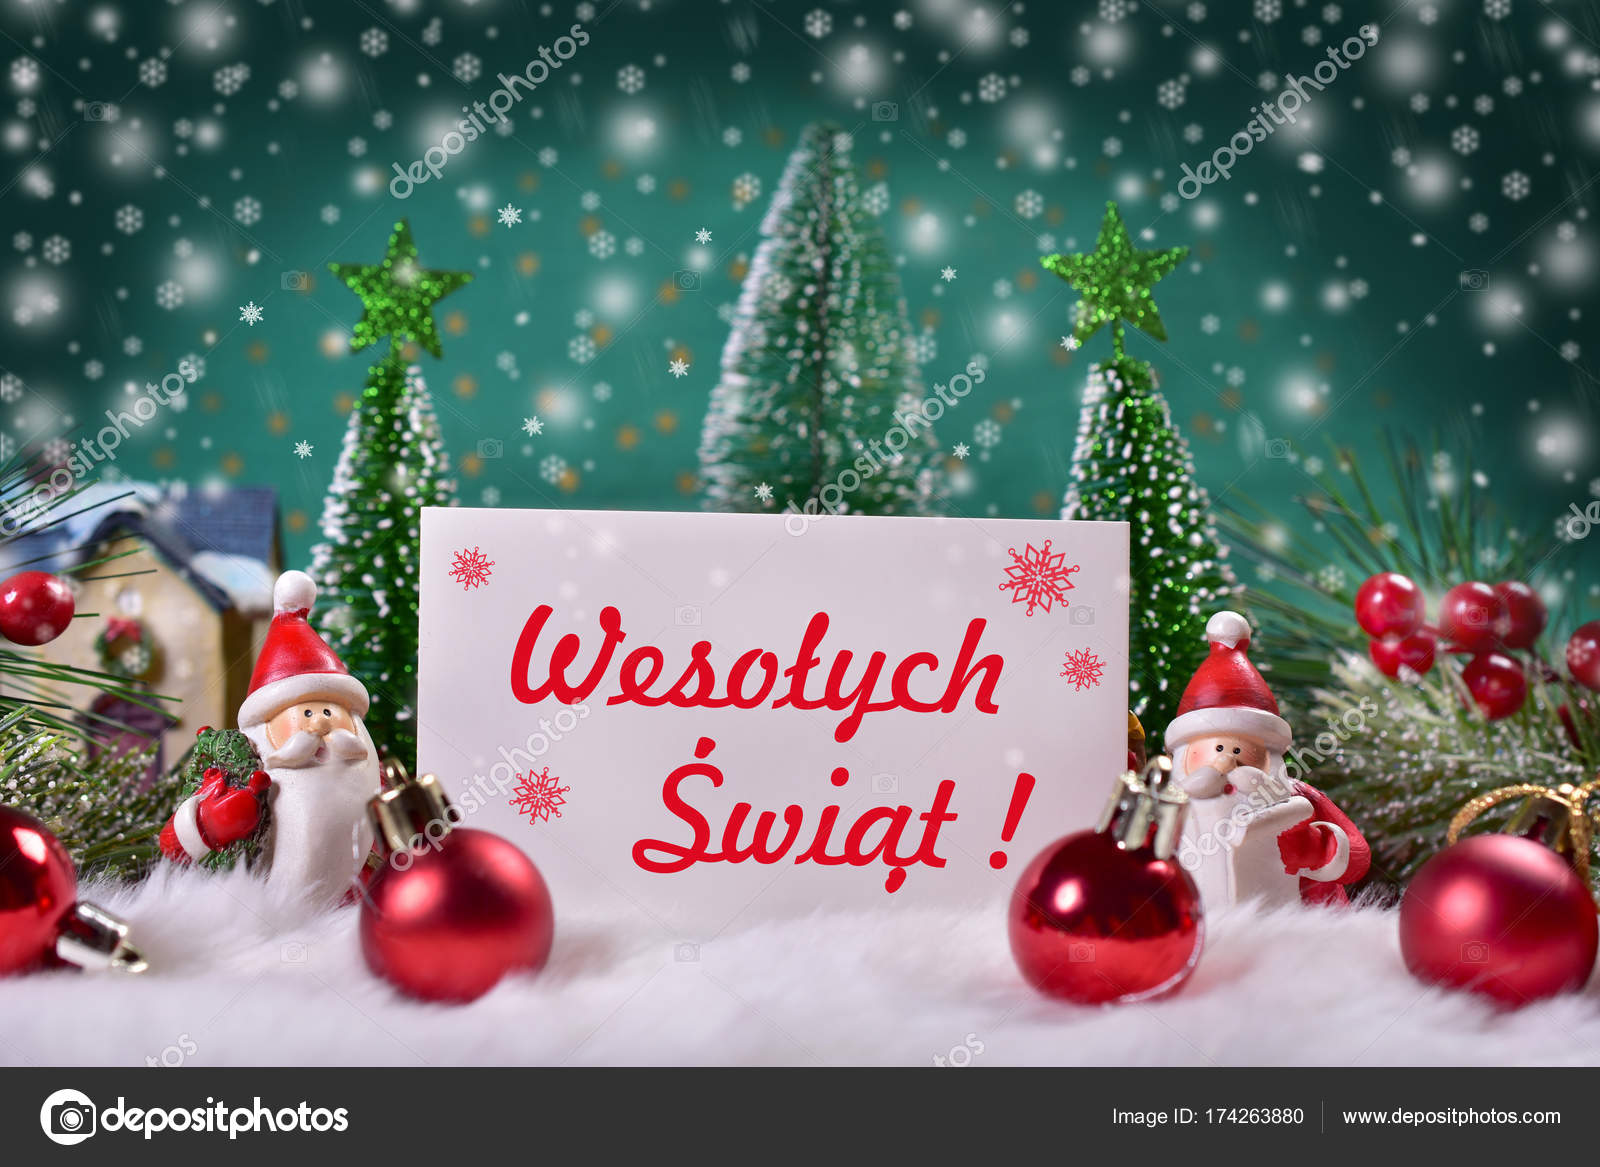 Merry Christmas In Polish.Christmas Greeting Card With Red Text Merry Christmas In